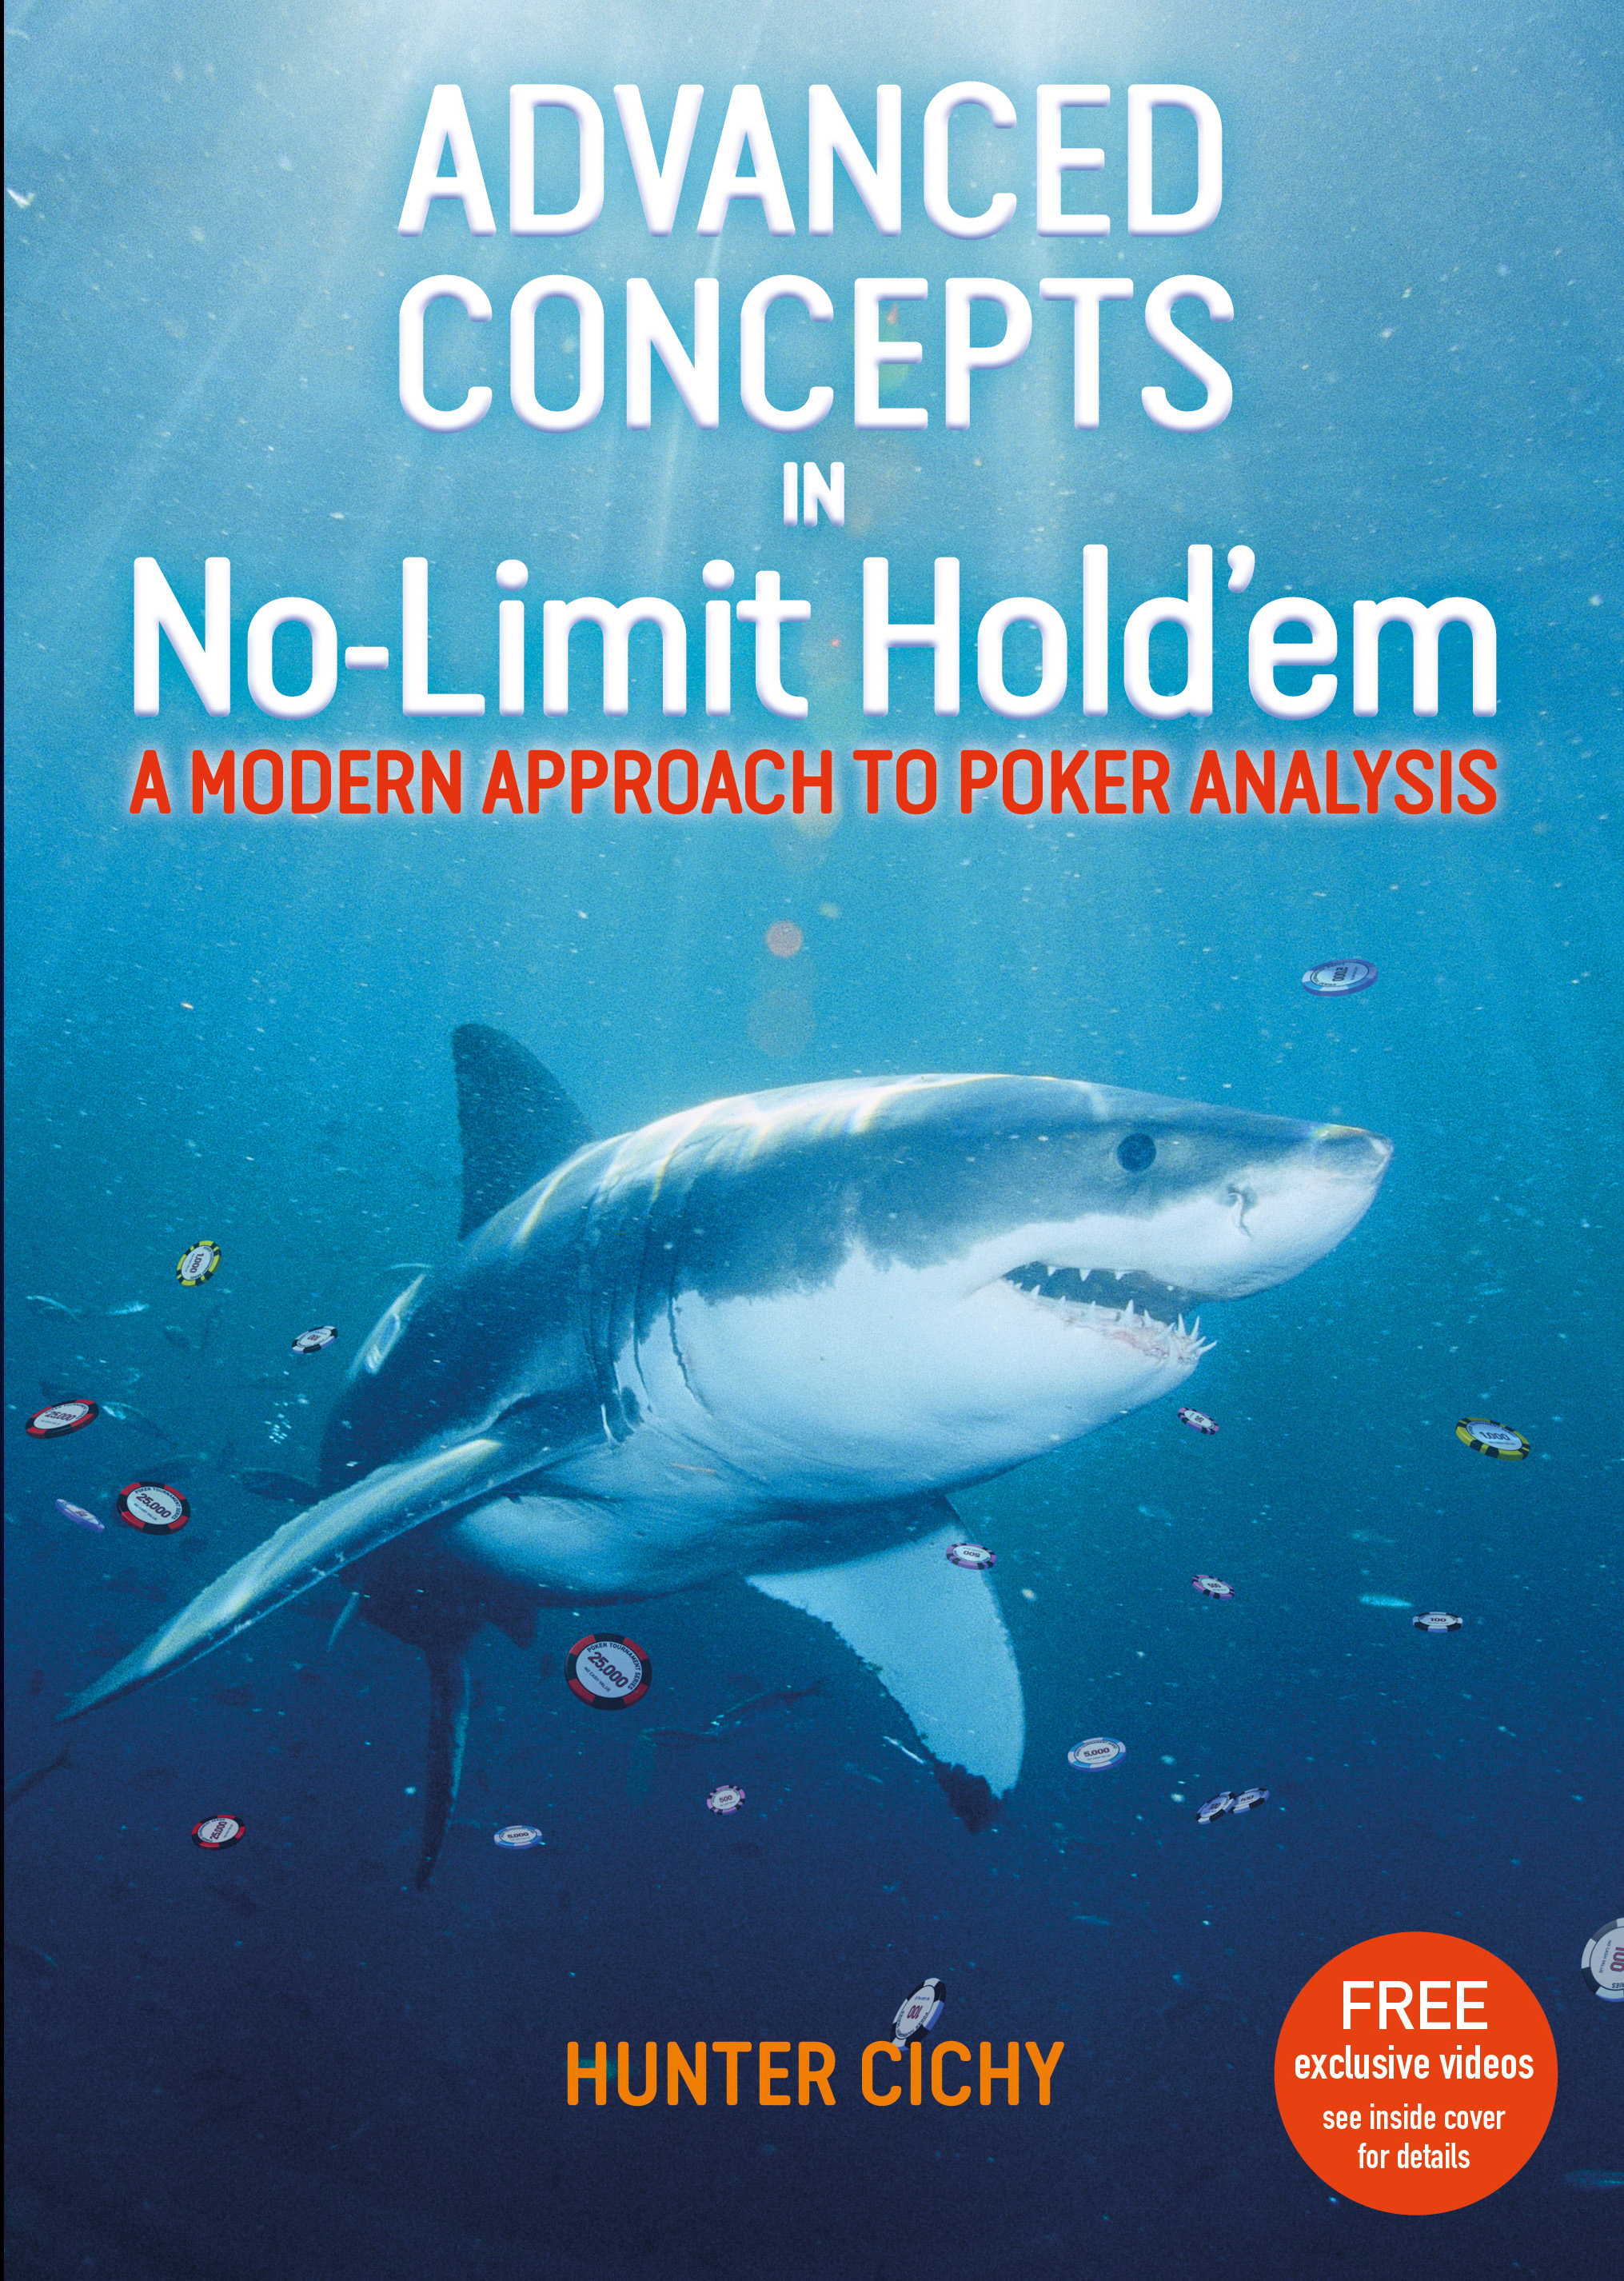 Book Review: 'Advanced Concepts in No-Limit Hold'em' Offers Solid Game Theory Info You Can Use